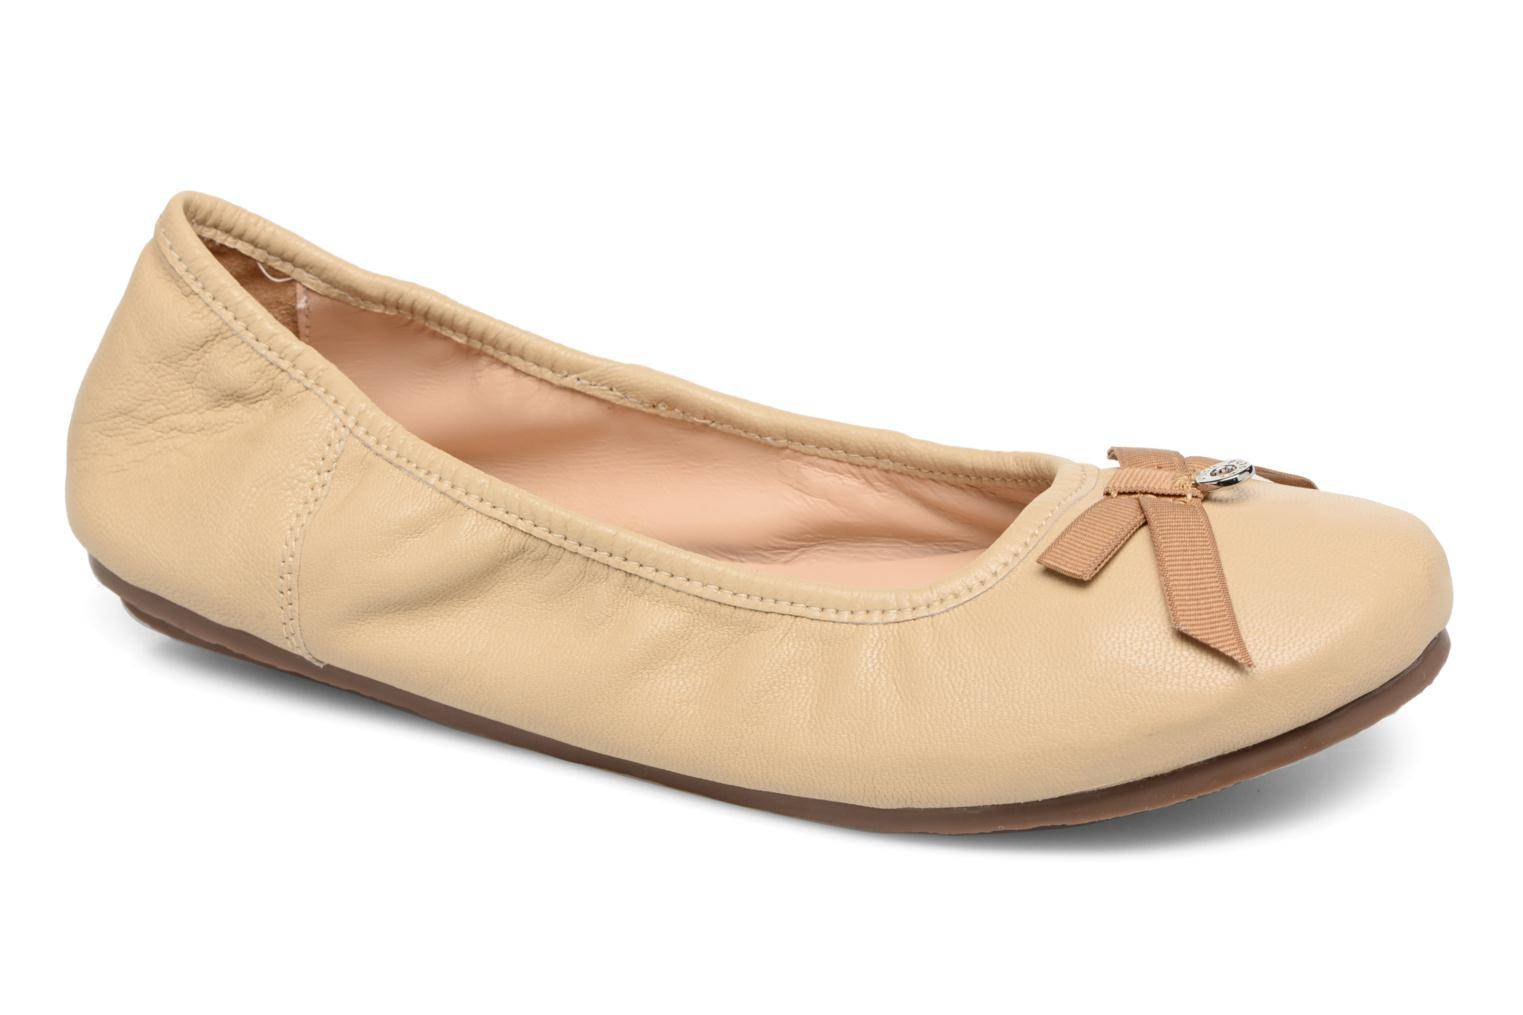 Hush Puppies - Lilas by  - Ballerinat Naisille  / Beige